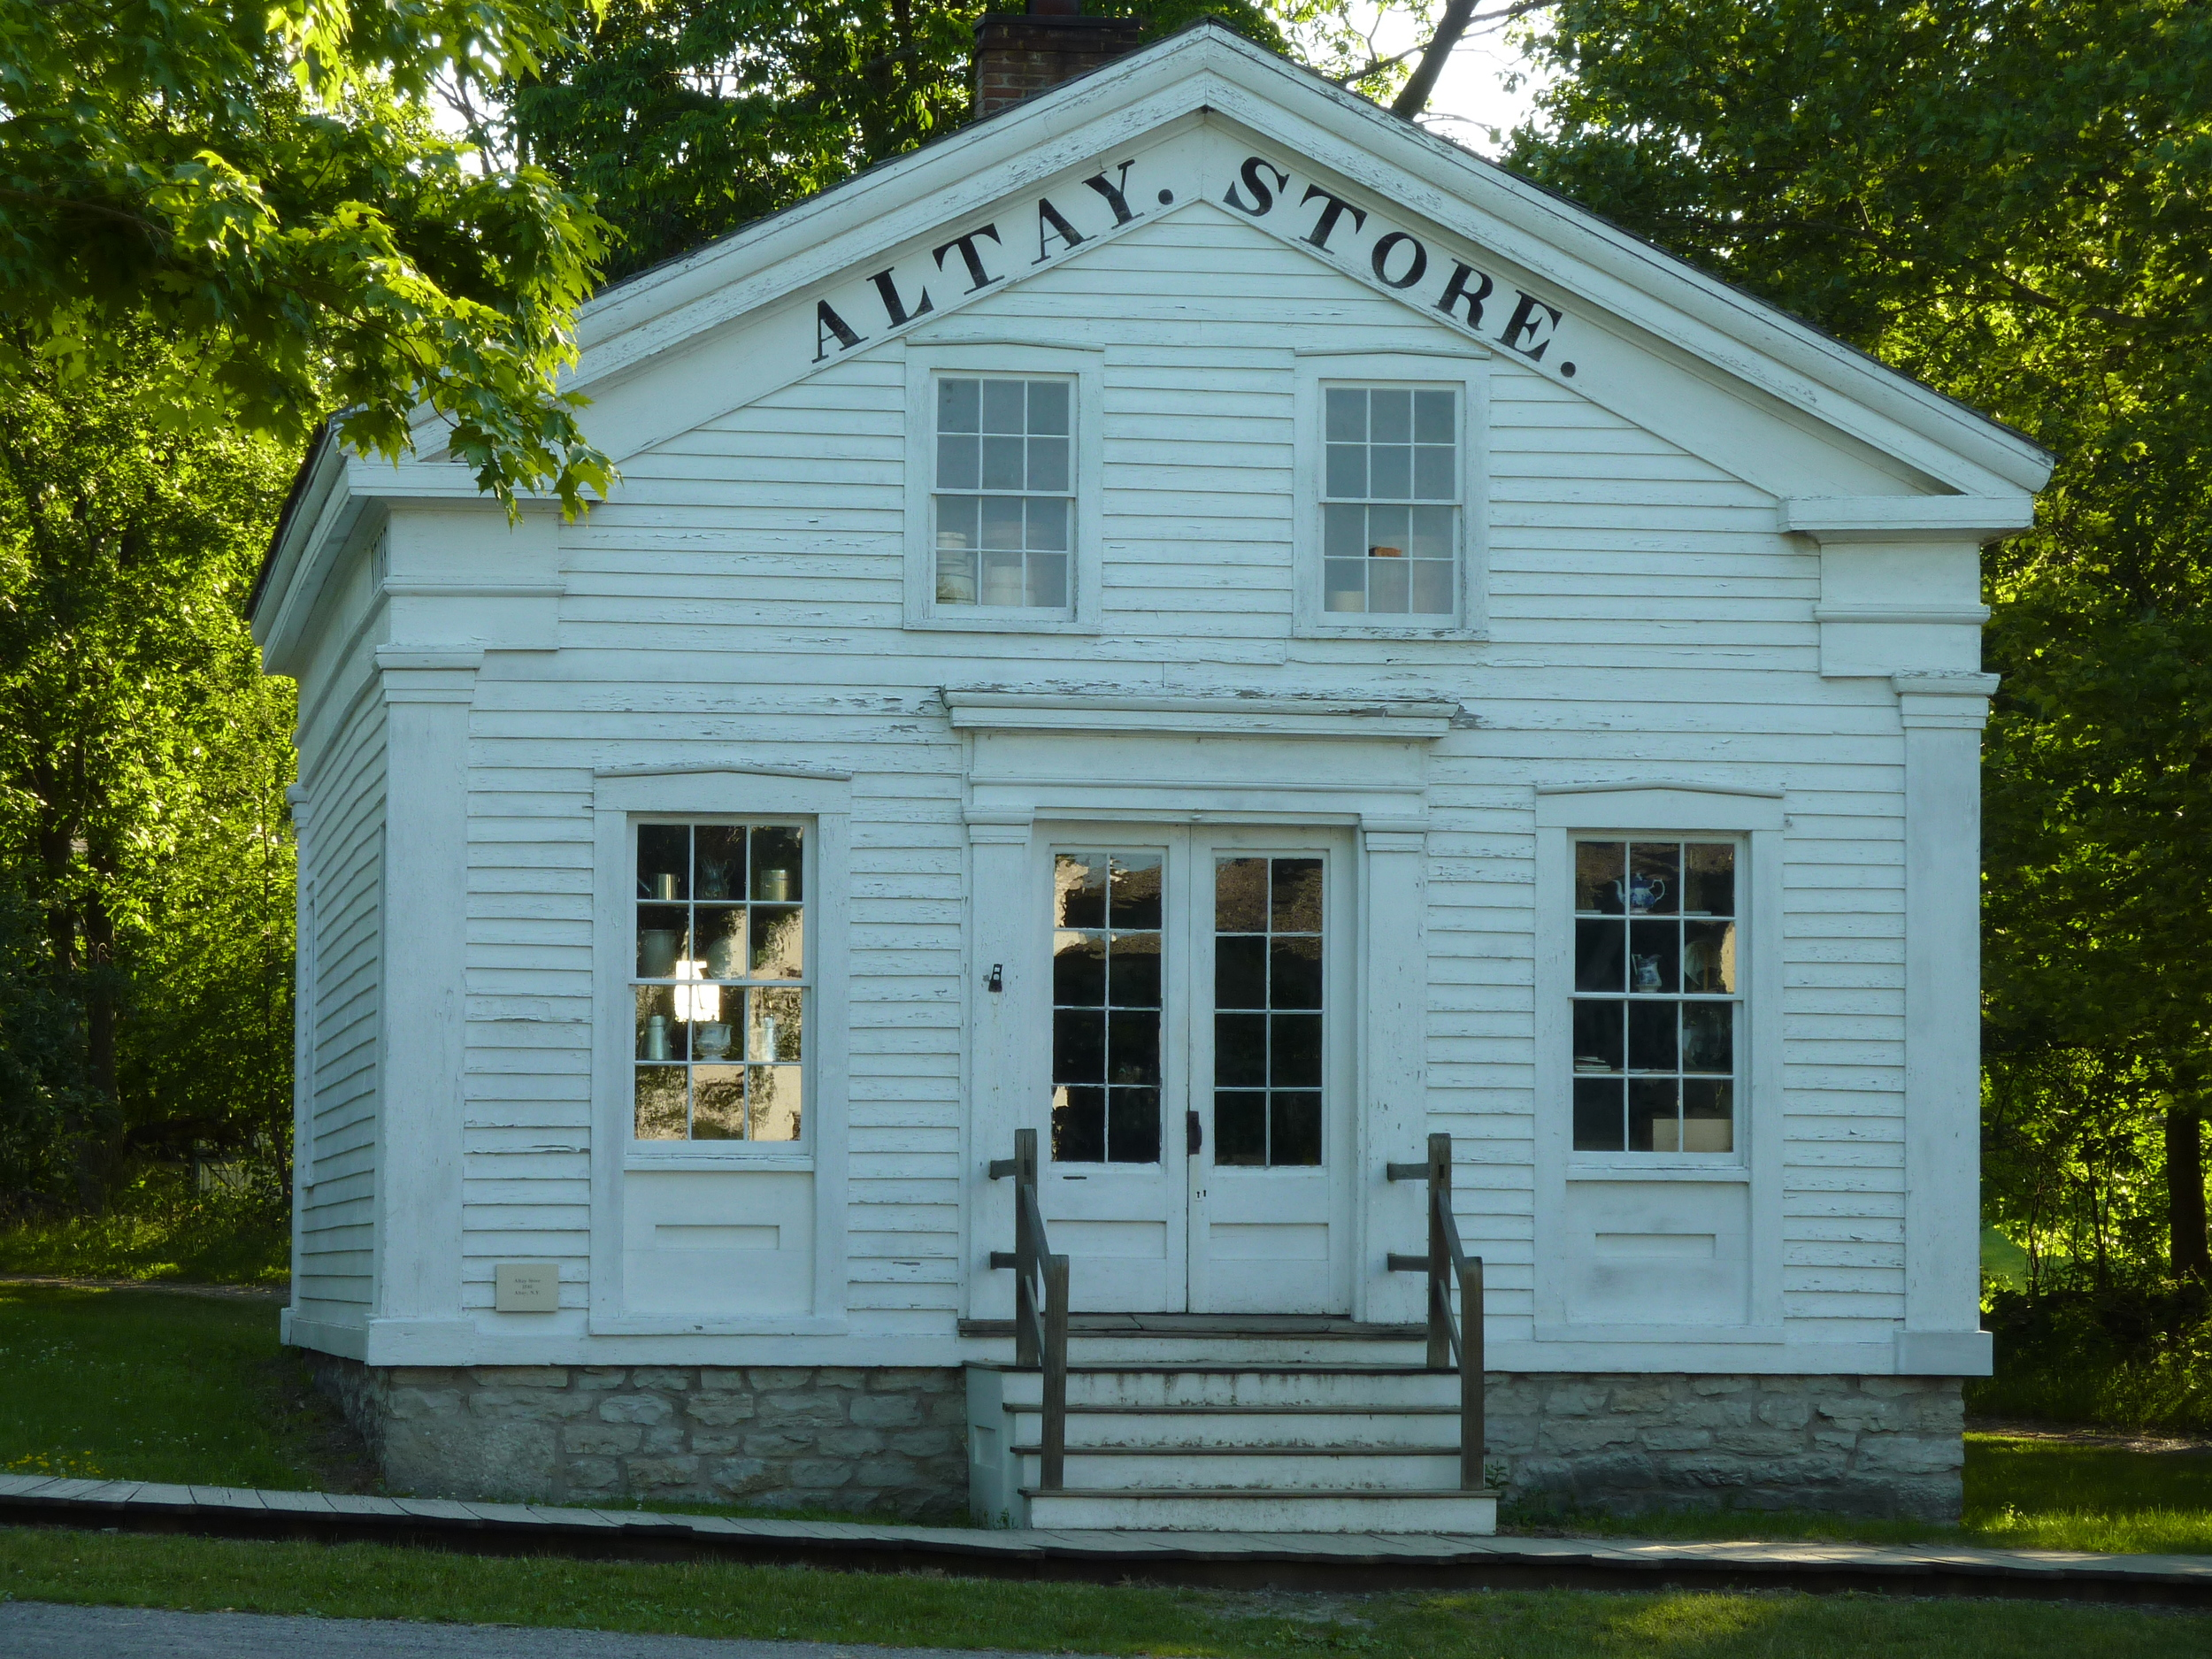 Drygoods shop at Genesee Valley County Village and Museum